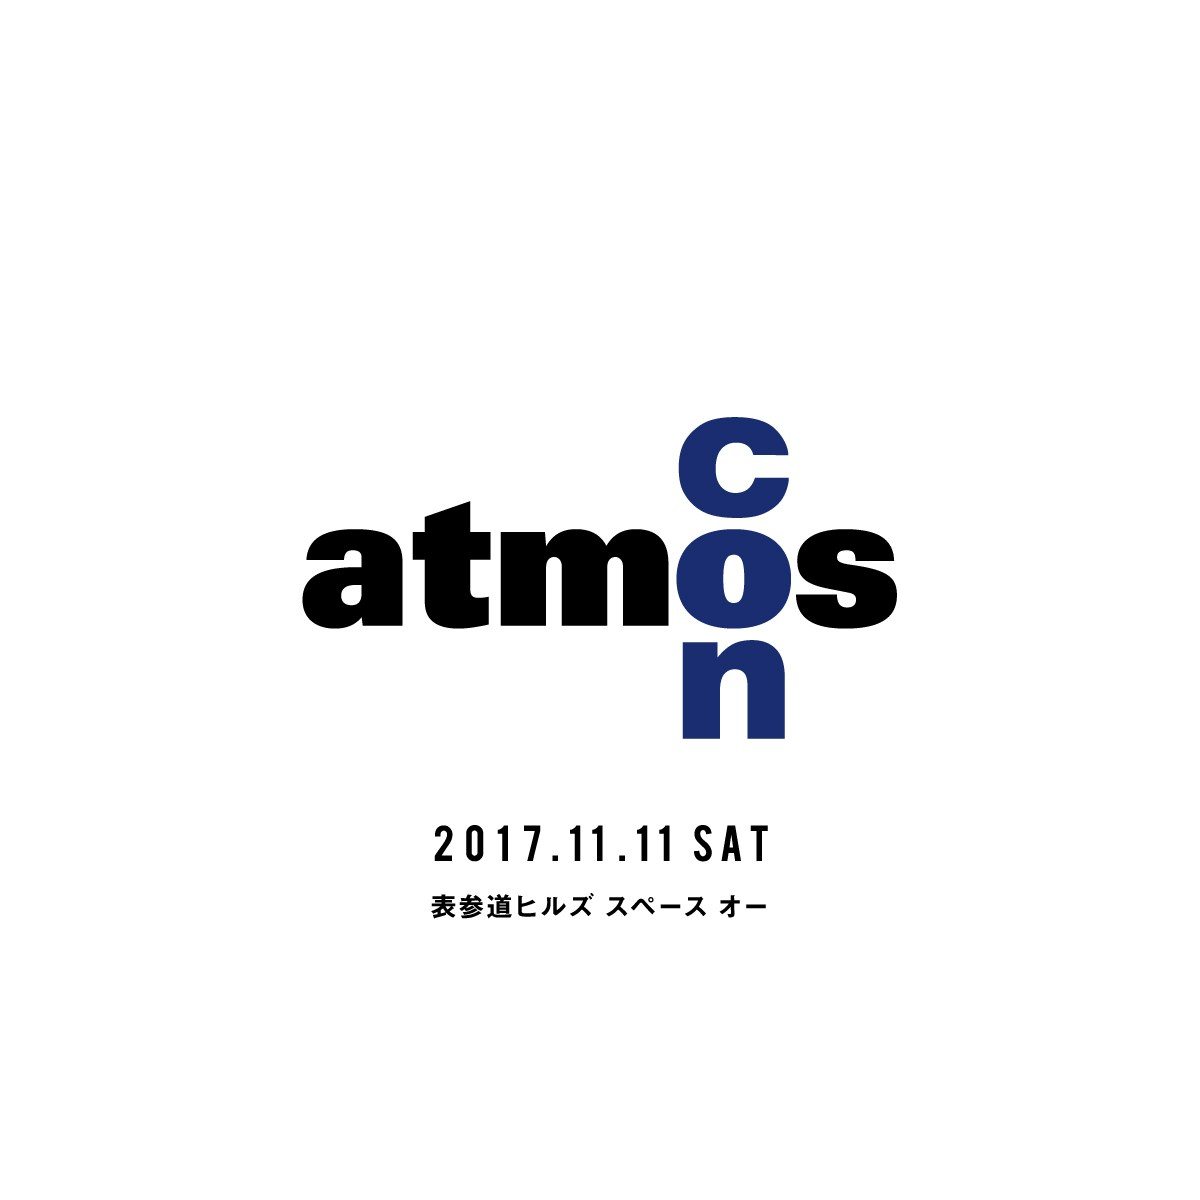 atmos-con-Vol-3-at-omotesando-hills-space-o-20171111